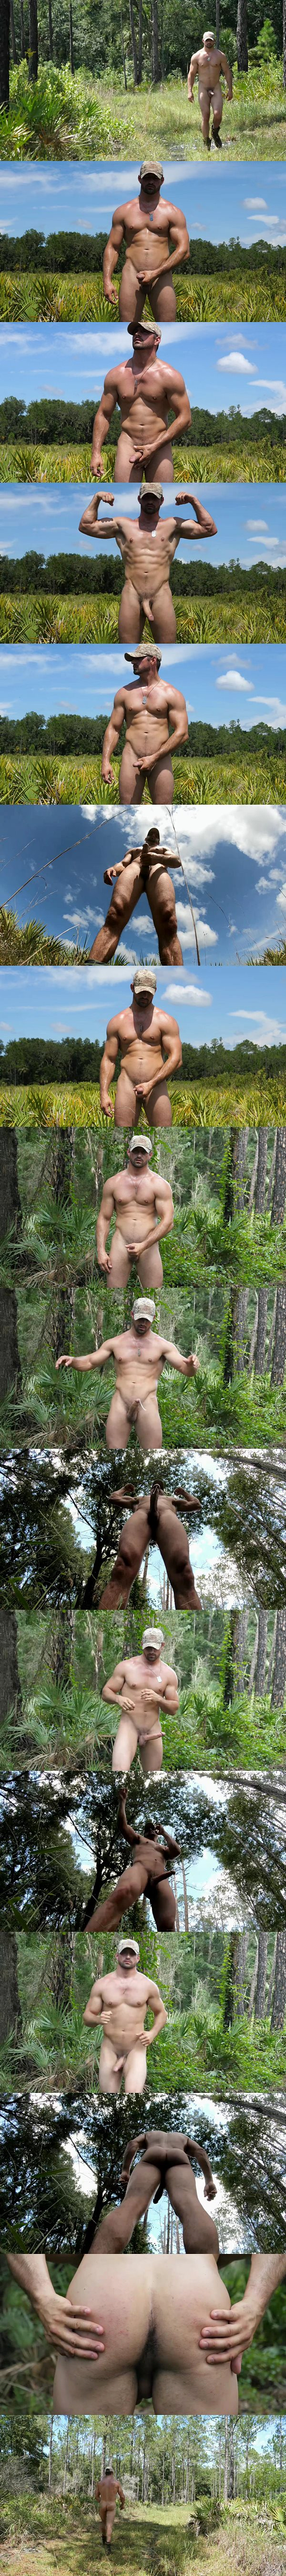 Masculine USMC Jason have a naked run in the woods and jerks off in Big Timber In The Woods at Theguysite 01